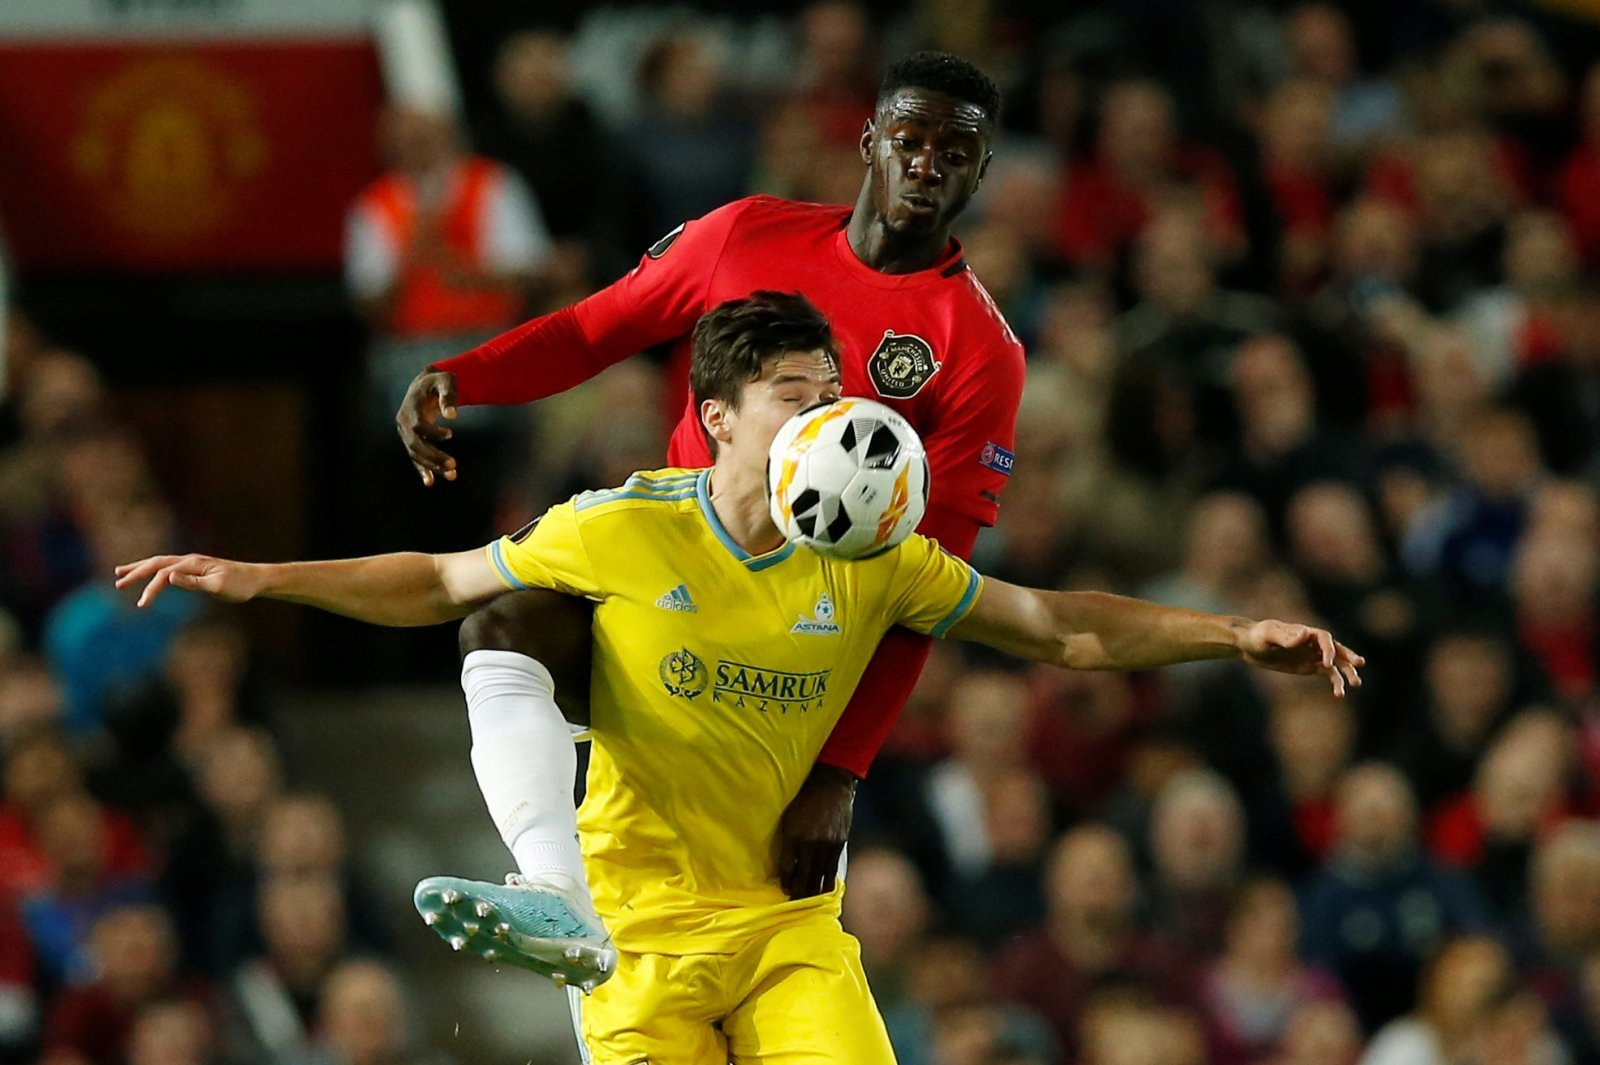 Manchester United: Axel Tuanzebe set to return this weekend against Norwich City